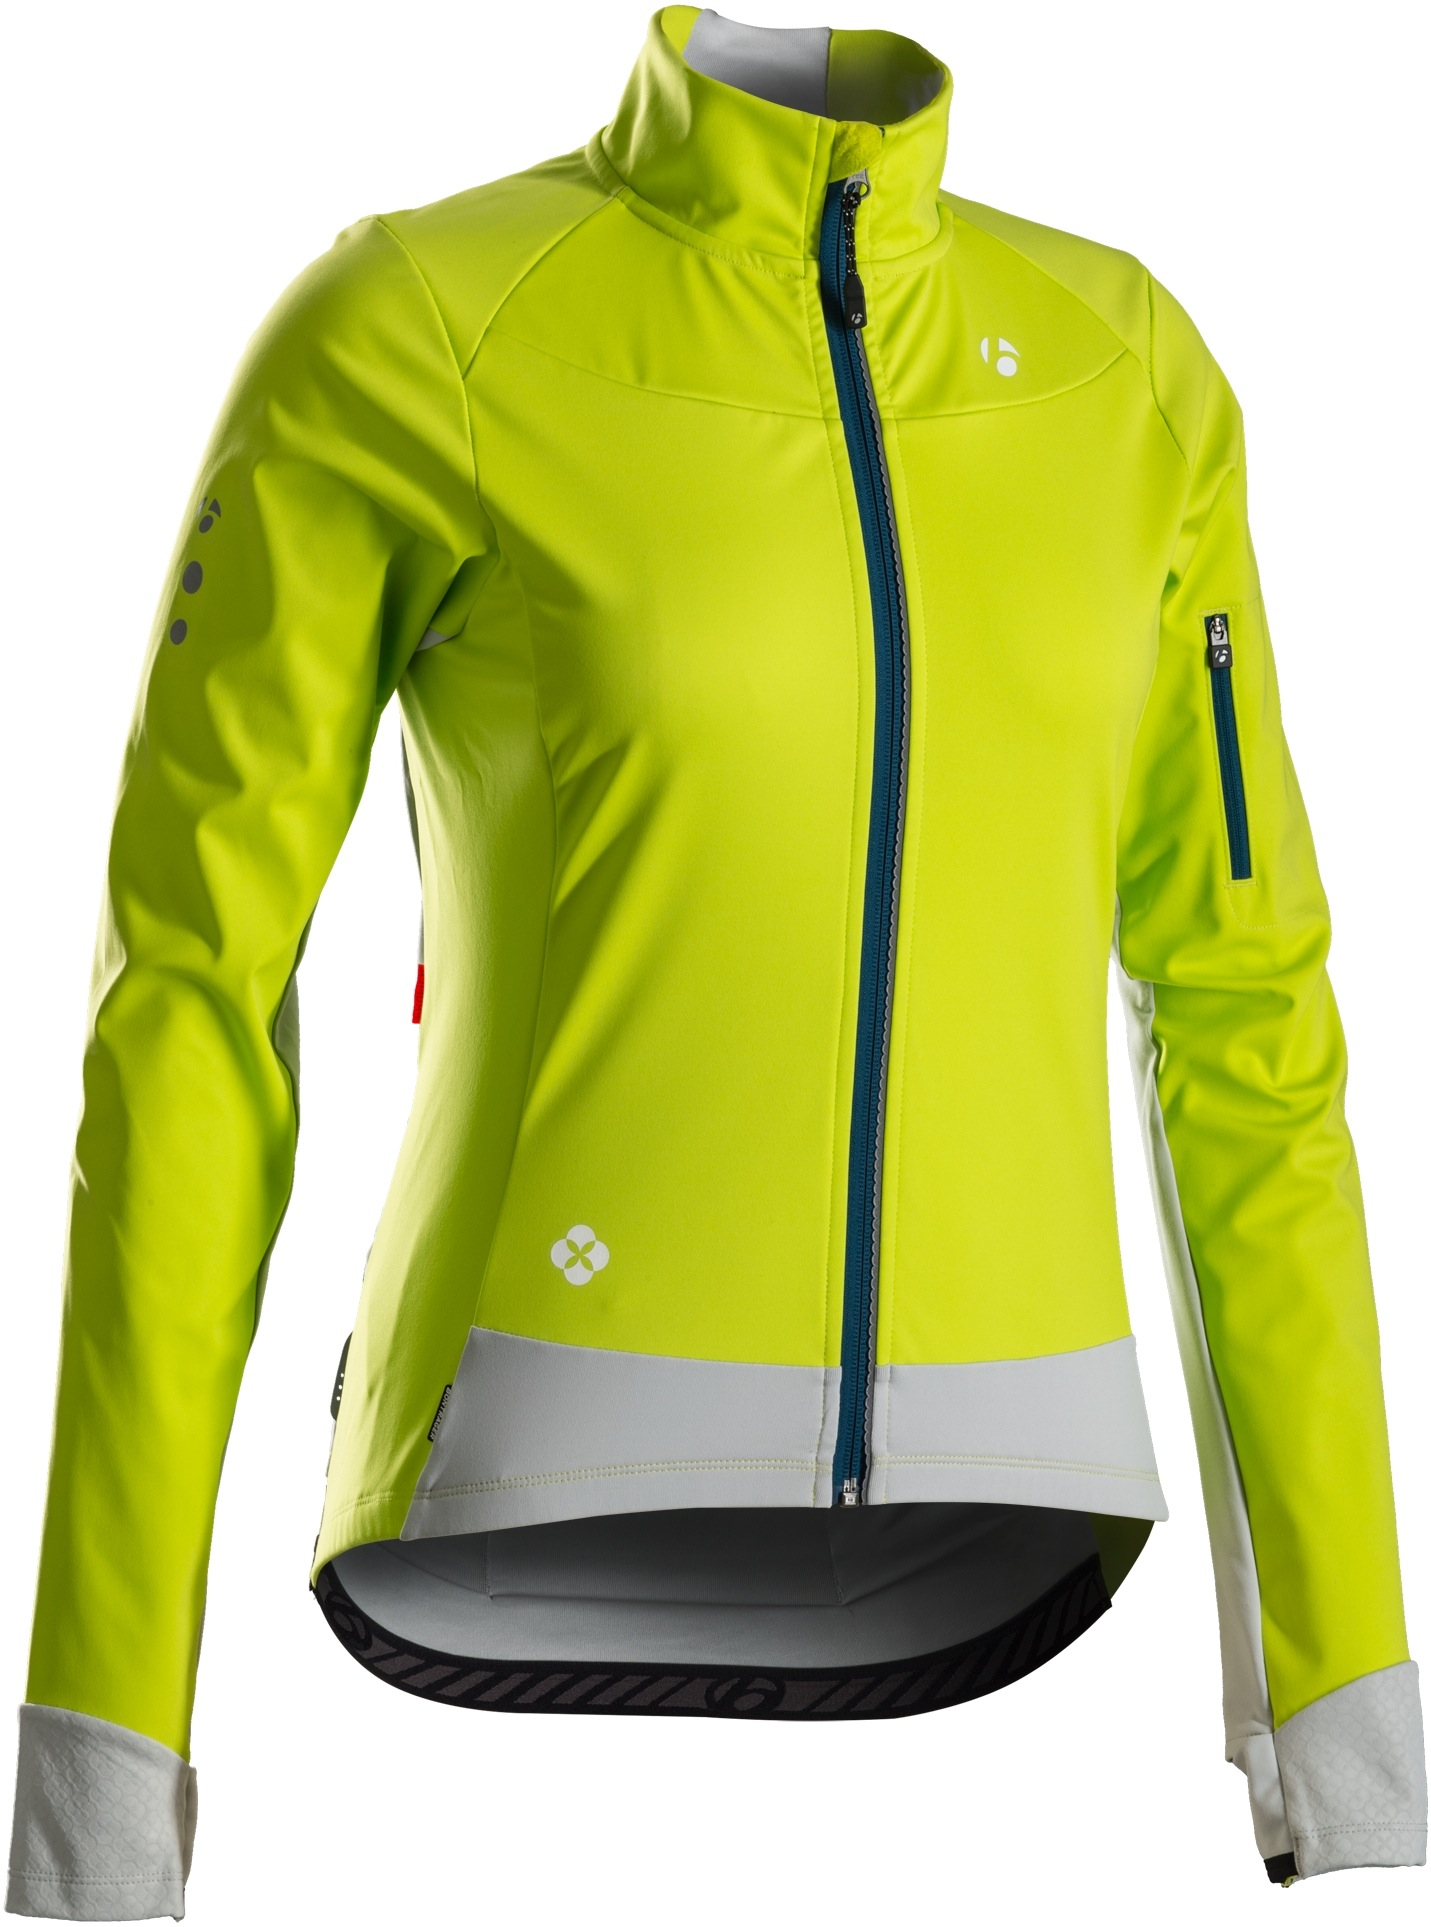 Bontrager RXL 180 Softshell Women s Jacket - Ladies Jackets - Ladies ... fd642885a